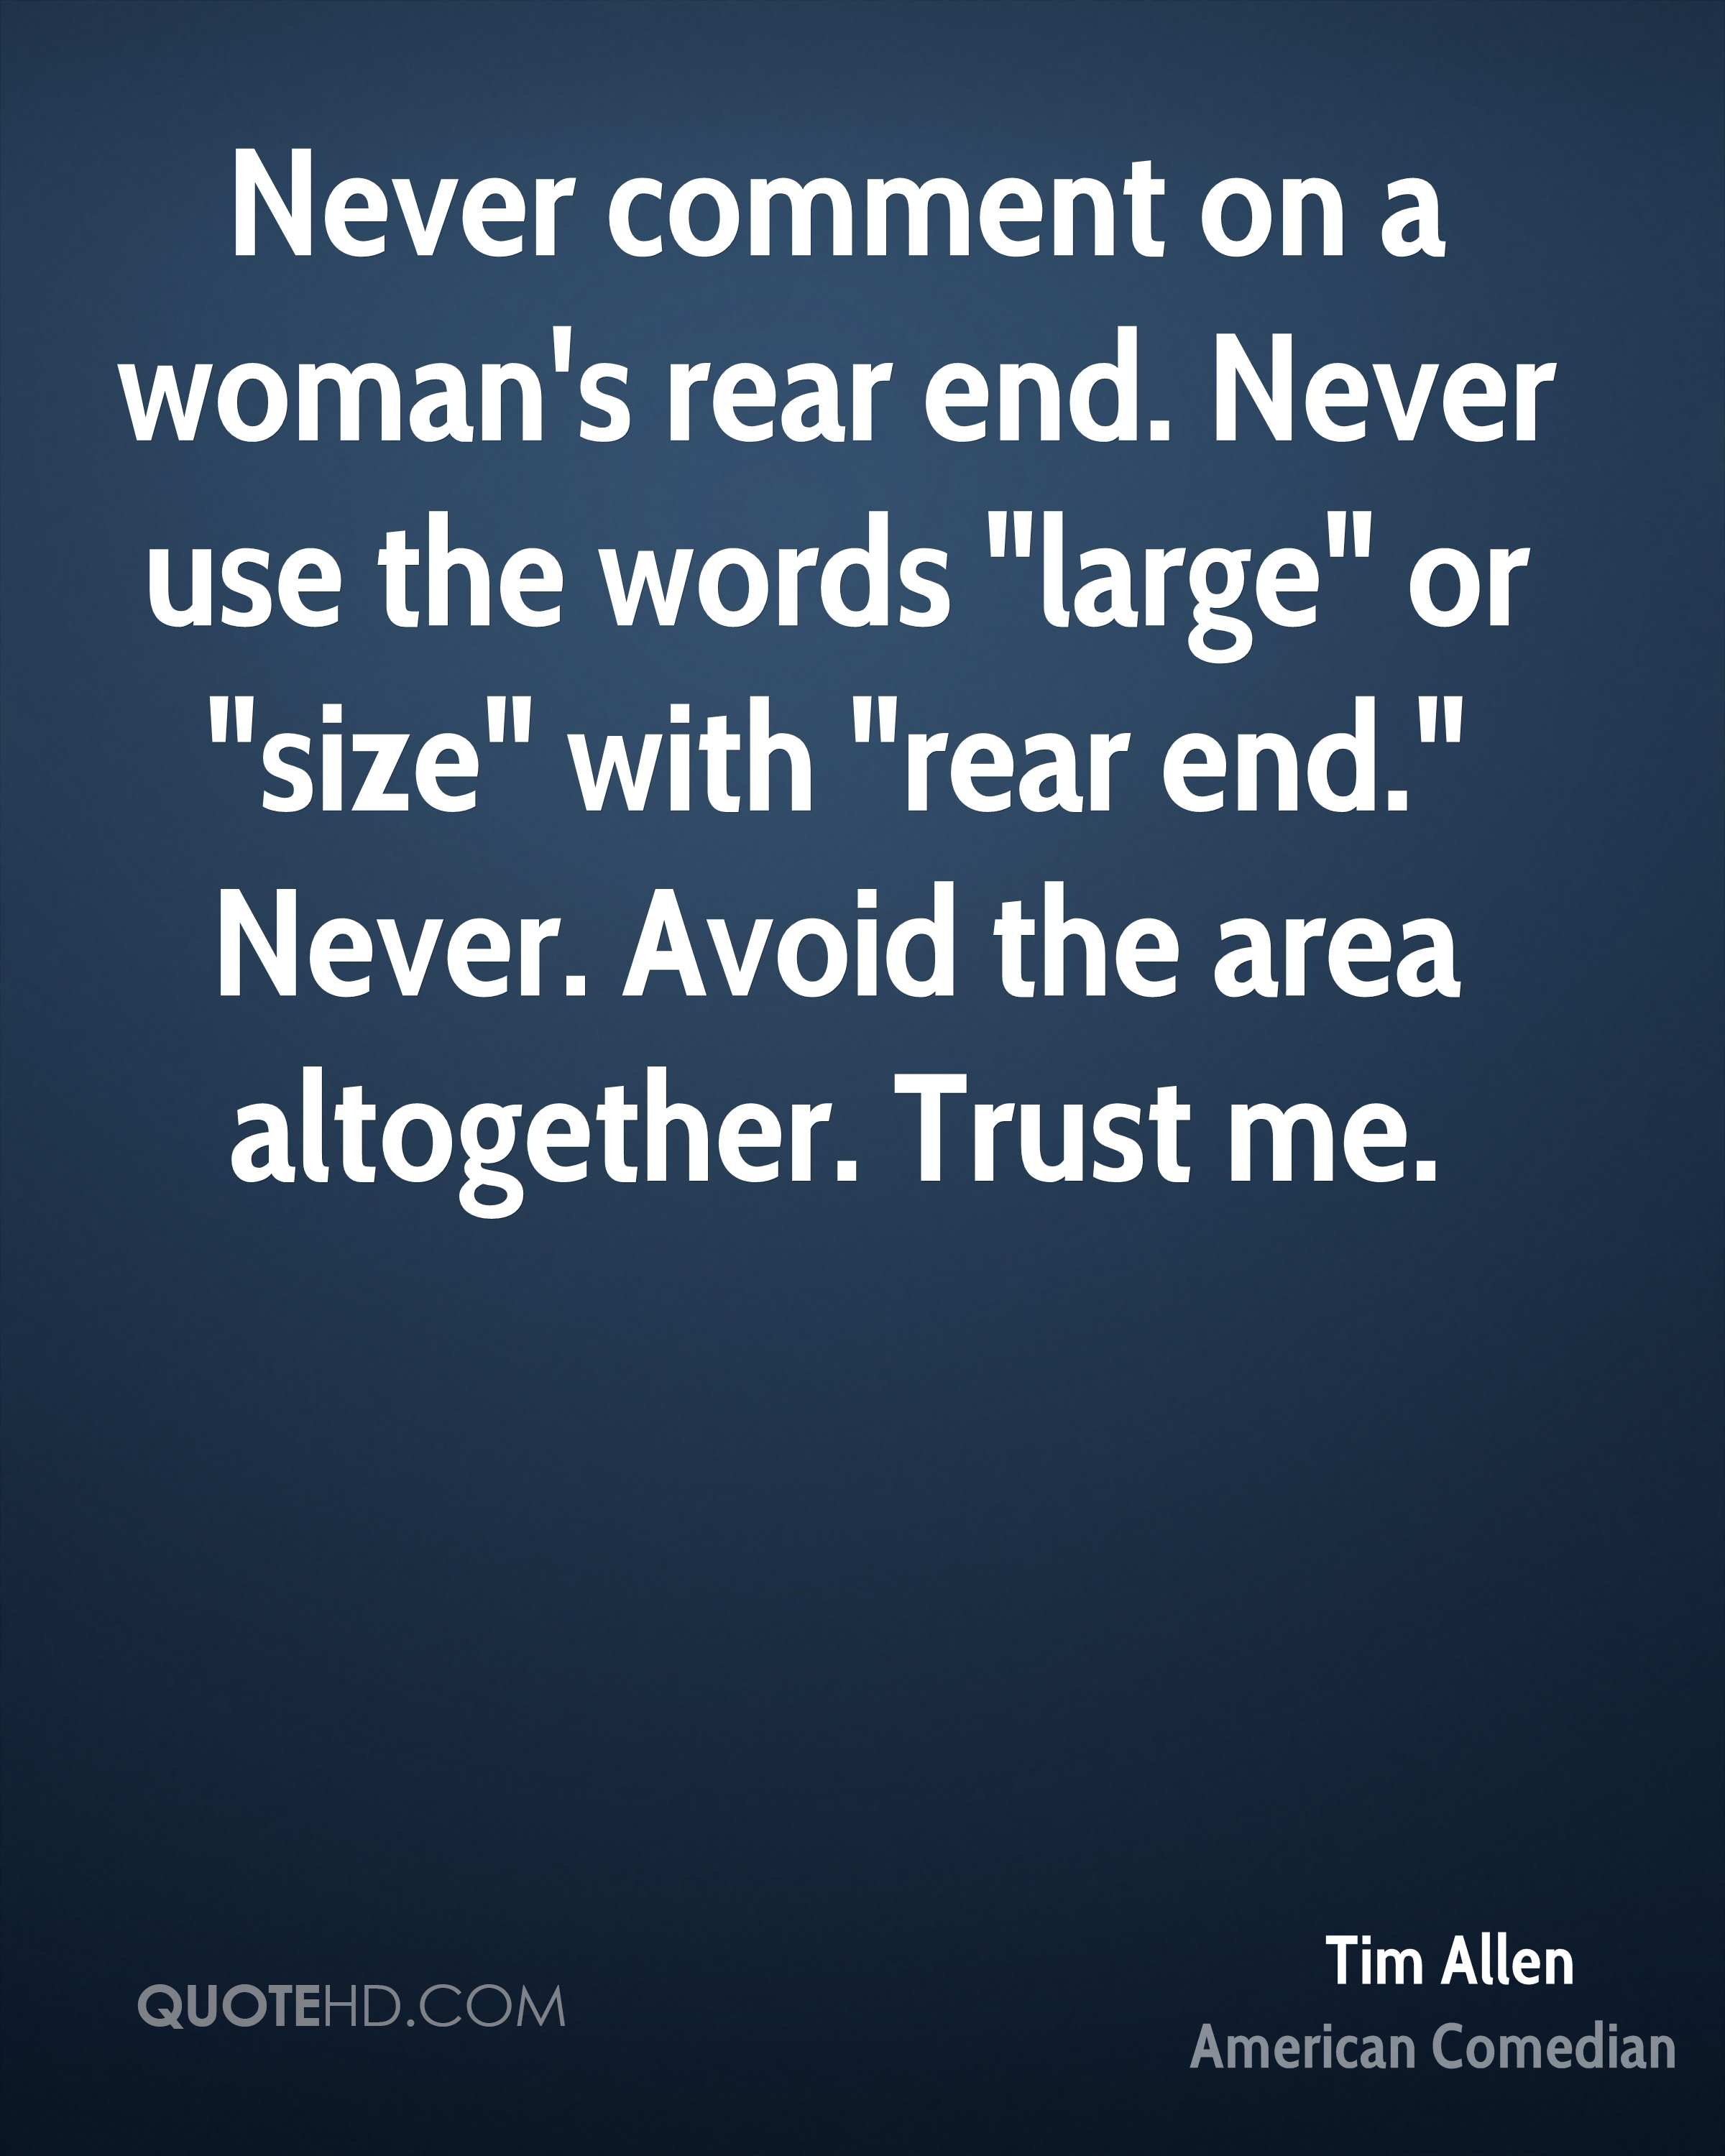 """Never comment on a woman's rear end. Never use the words """"large"""" or """"size"""" with """"rear end."""" Never. Avoid the area altogether. Trust me."""